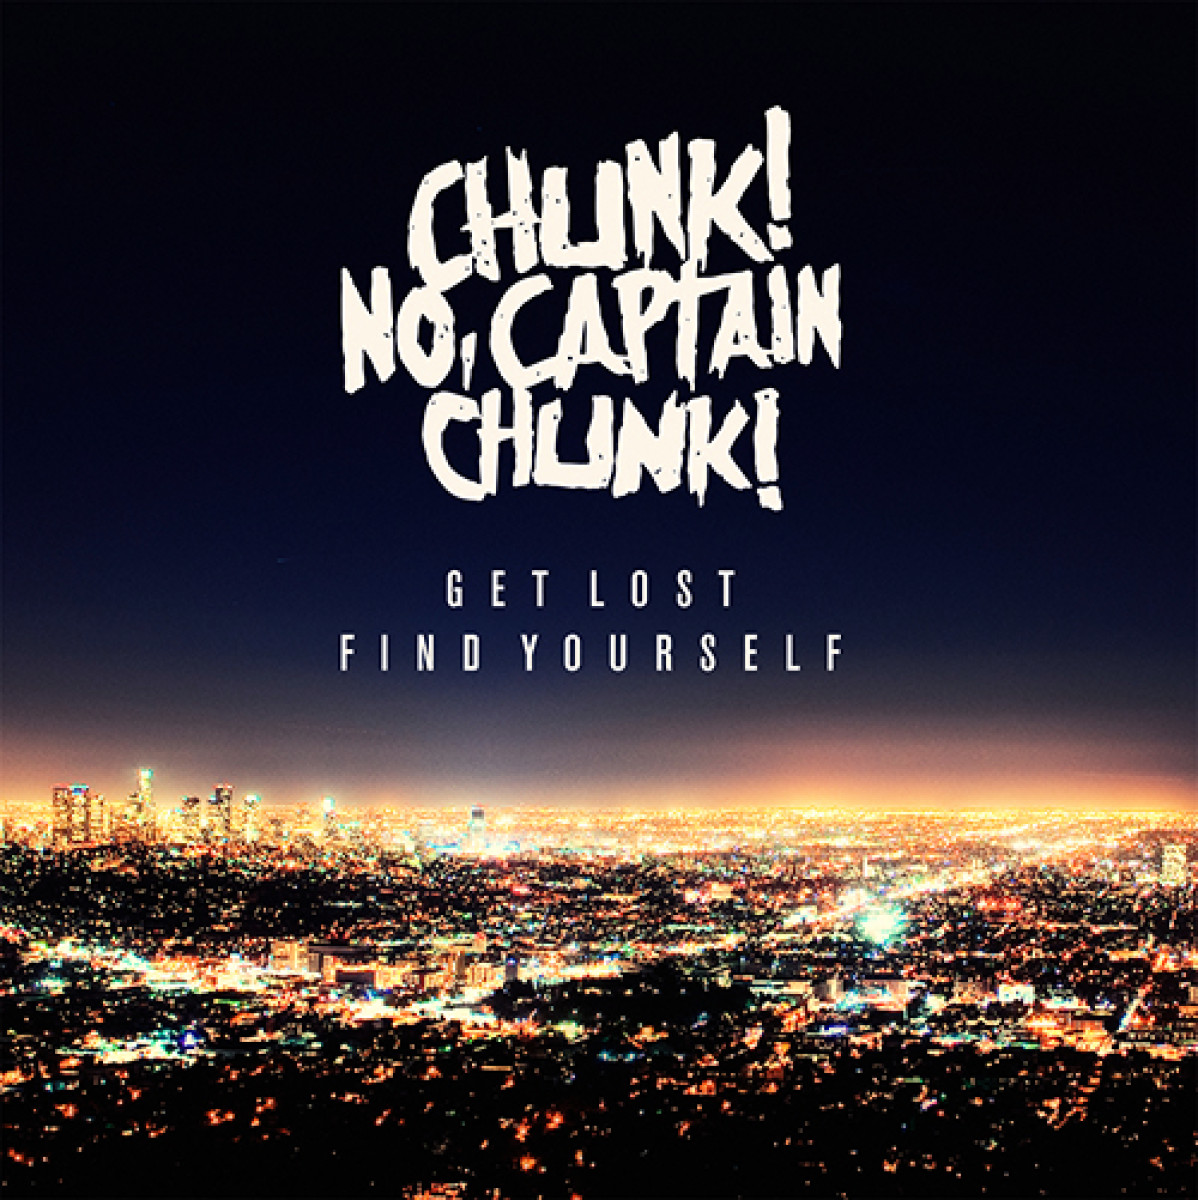 Chunk-No-Get-Lost-Find-Yourself